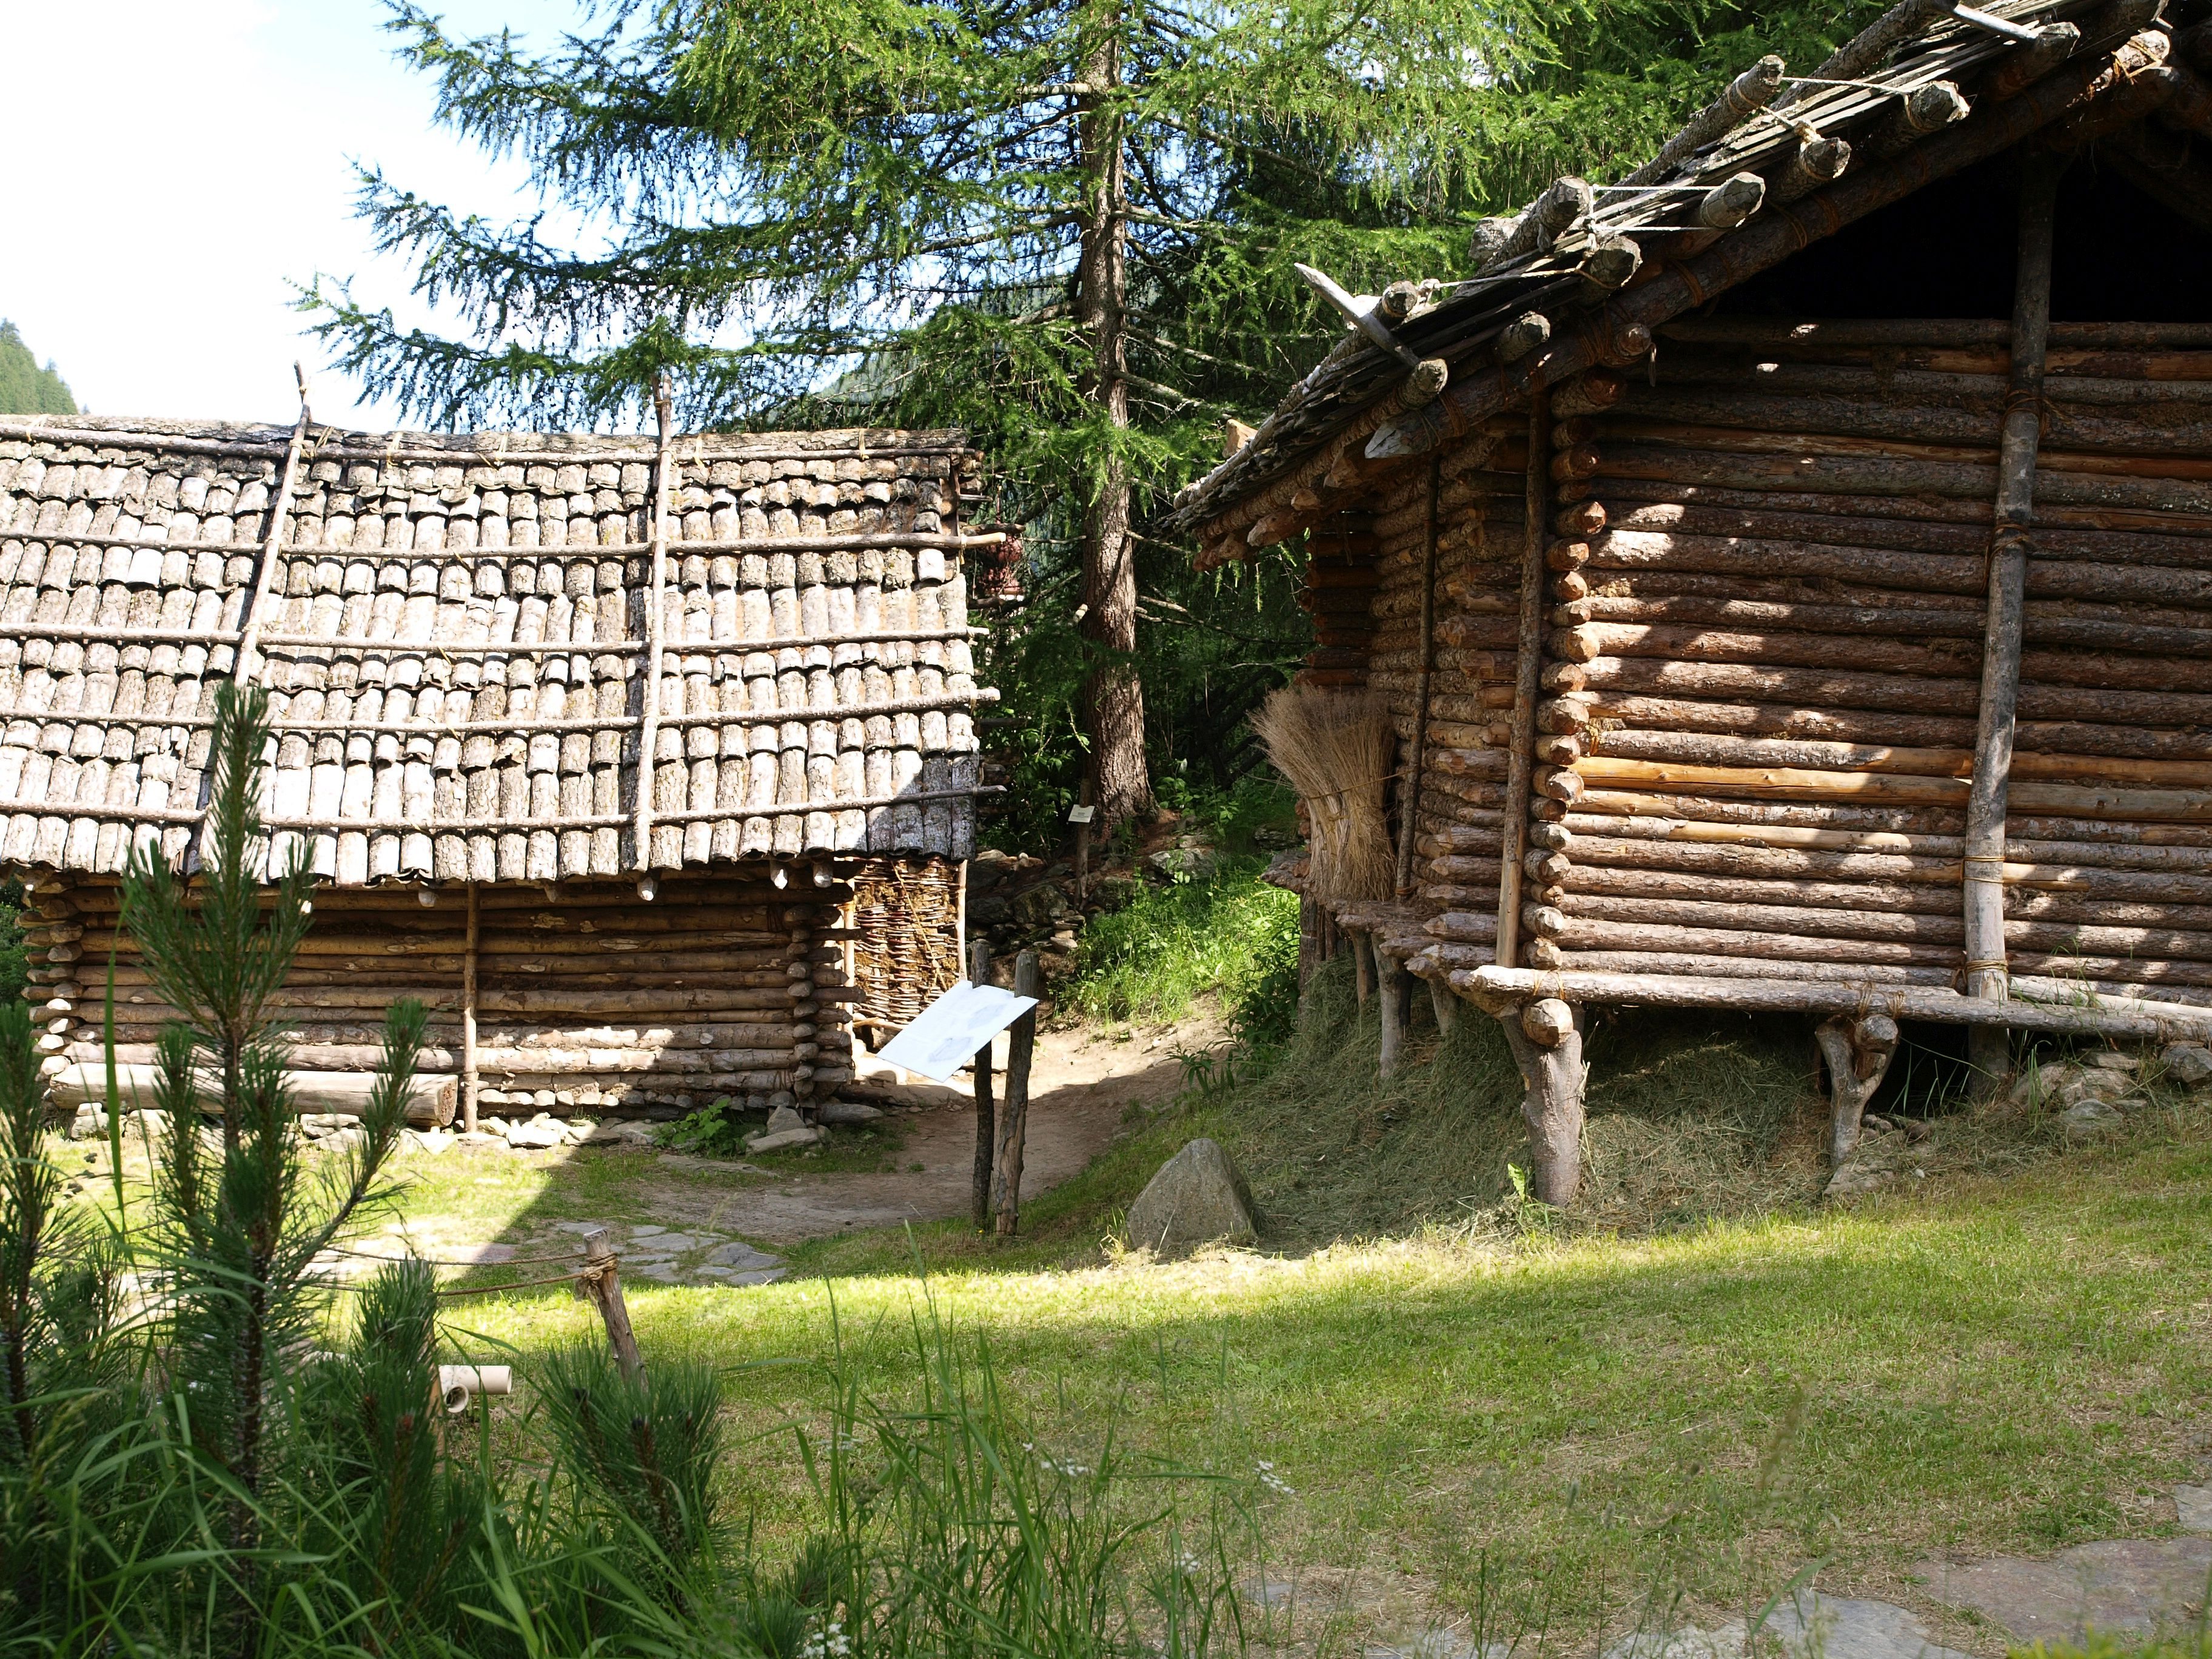 Zwei jungsteinzeitliche Hausmodelle im Freilichtbereich des archeoParc Schnalstal in der Nähe der Ötzifundstelle in Südtirol <br/> Due ricostruzioni di capanne dell'epoca di Ötzi nell'area all'aperto dell'archeoParc della val Senales <br/> Two neolithic house reconstructions at the archeological open-air museum archeoParc Val Senales close to the discovery site of the Iceman in northern Italy<br/><br/>2900-2600 BC <br/>Alleshausen-Grundwiesen, D